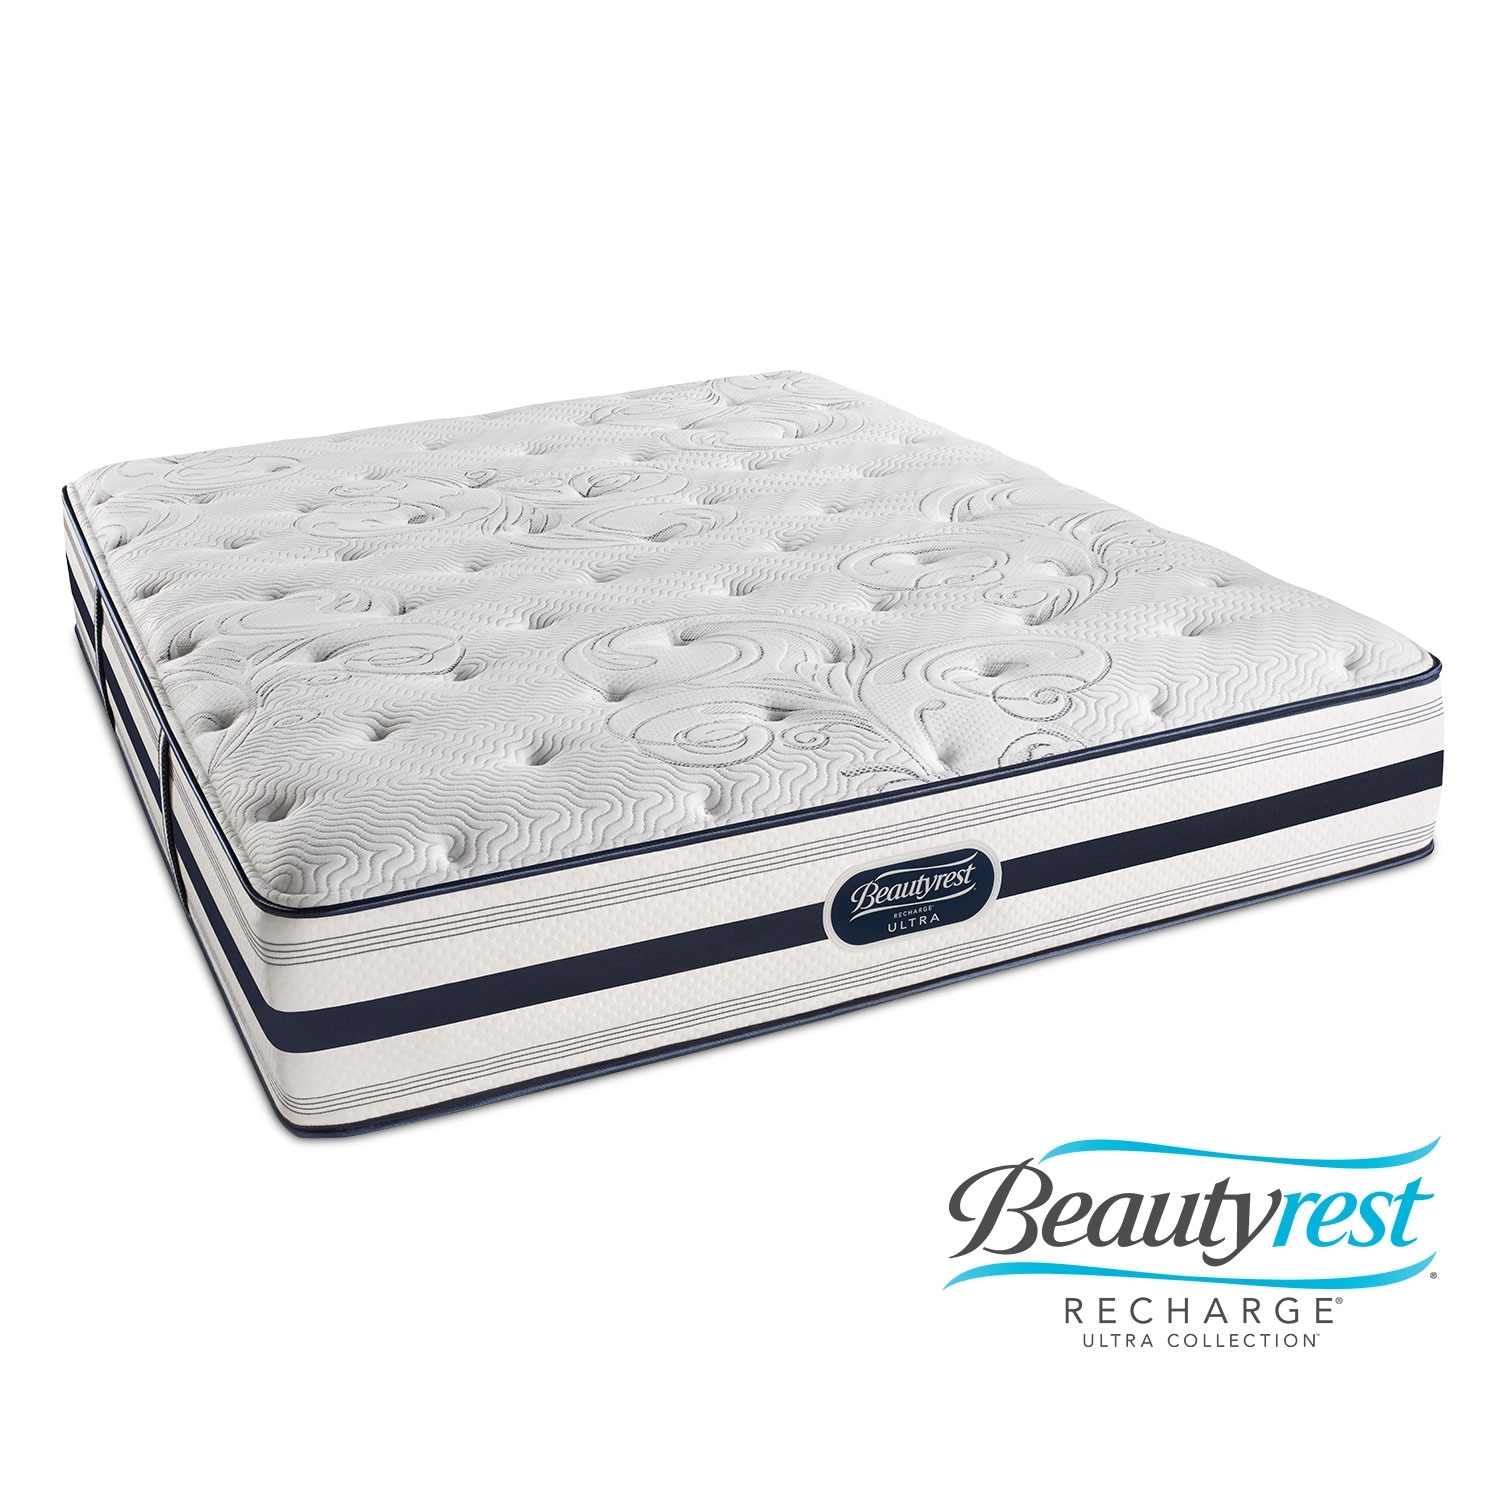 Mattresses and Bedding - Cerise Plush Twin XL Mattress